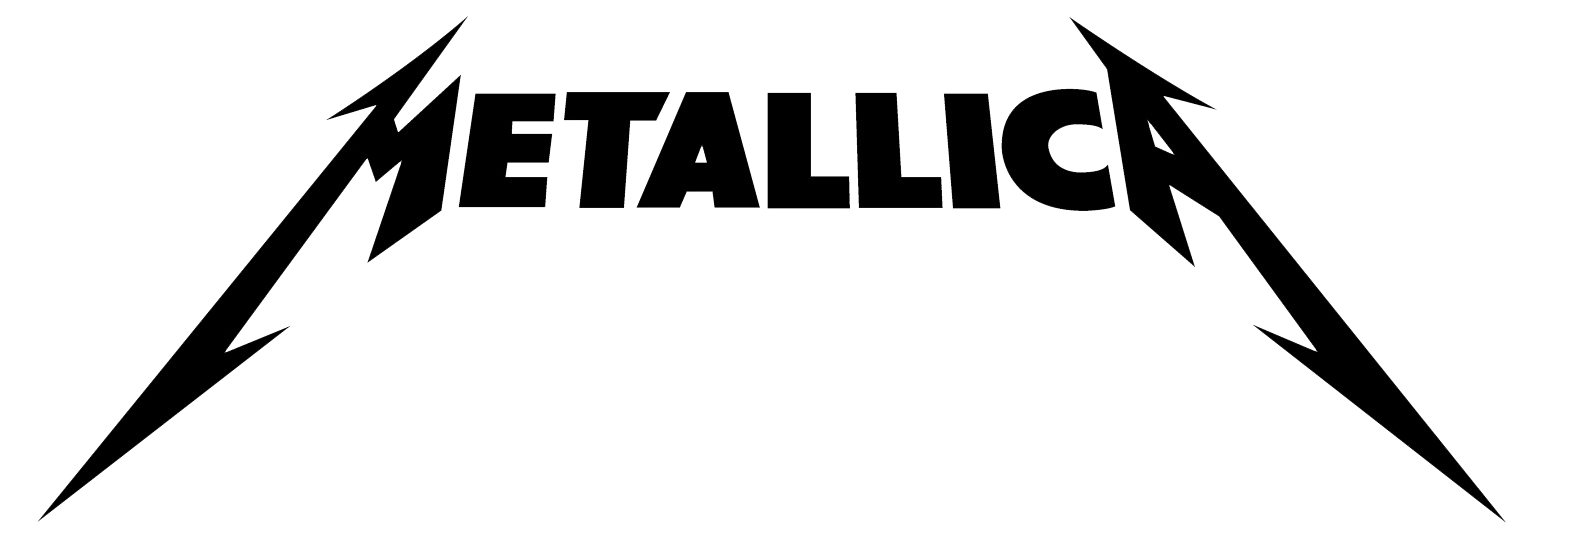 Metallica PNG Transparent Metallica.PNG Images..